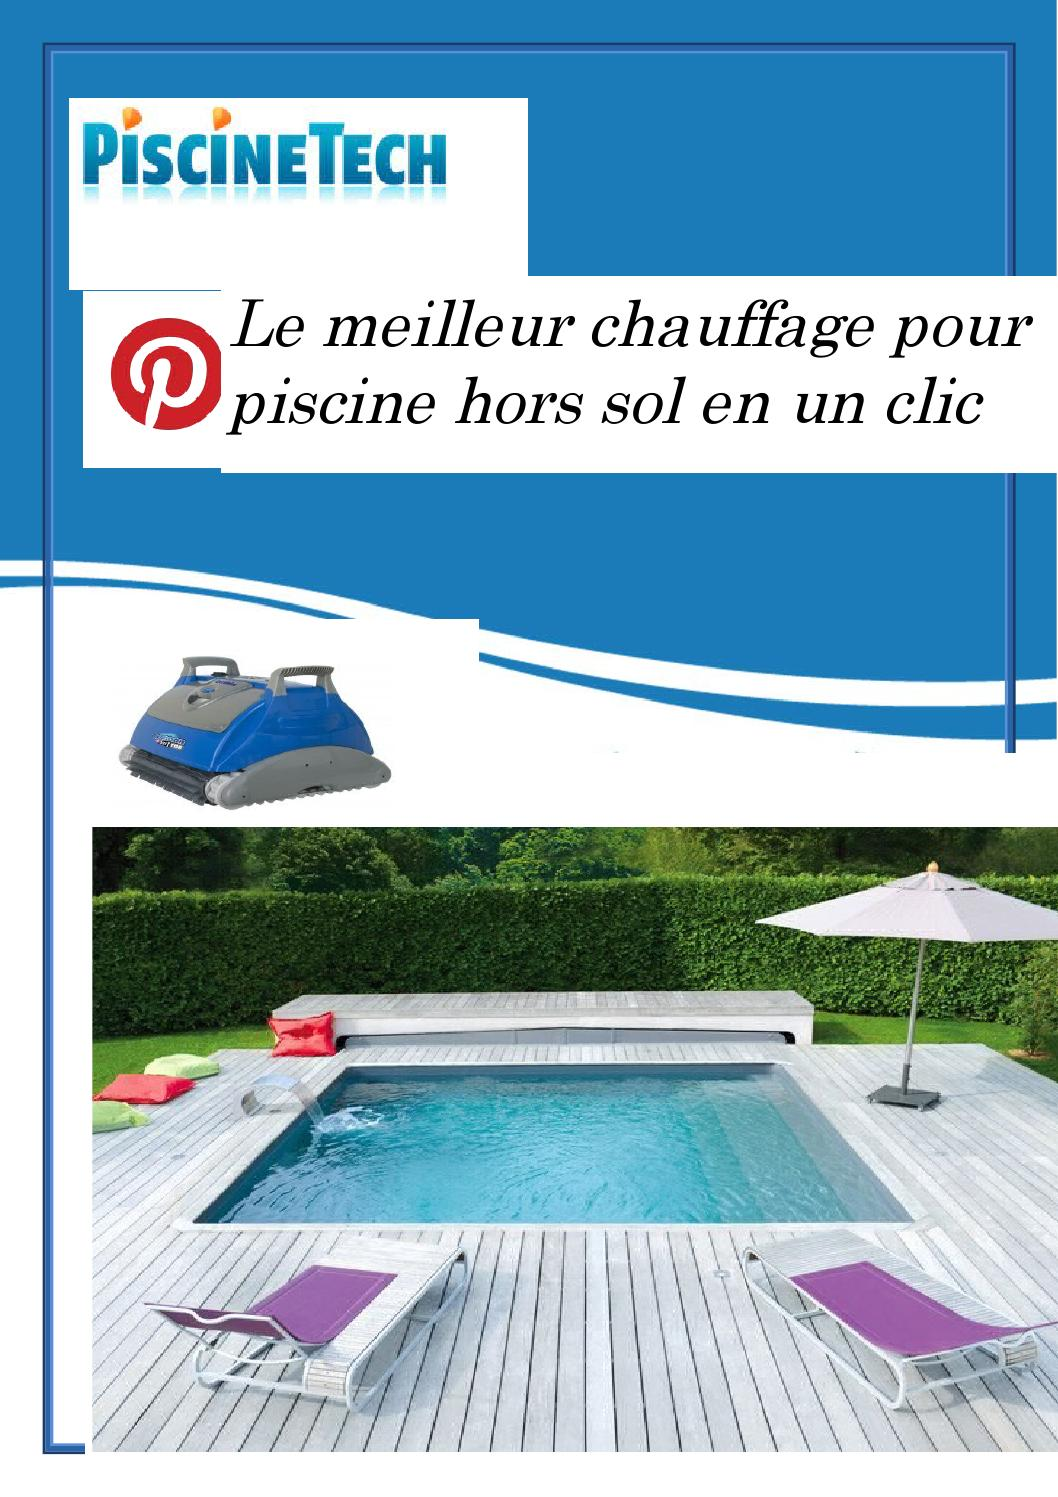 le meilleur chauffage pour piscine hors sol en un clic by piscine tech issuu. Black Bedroom Furniture Sets. Home Design Ideas